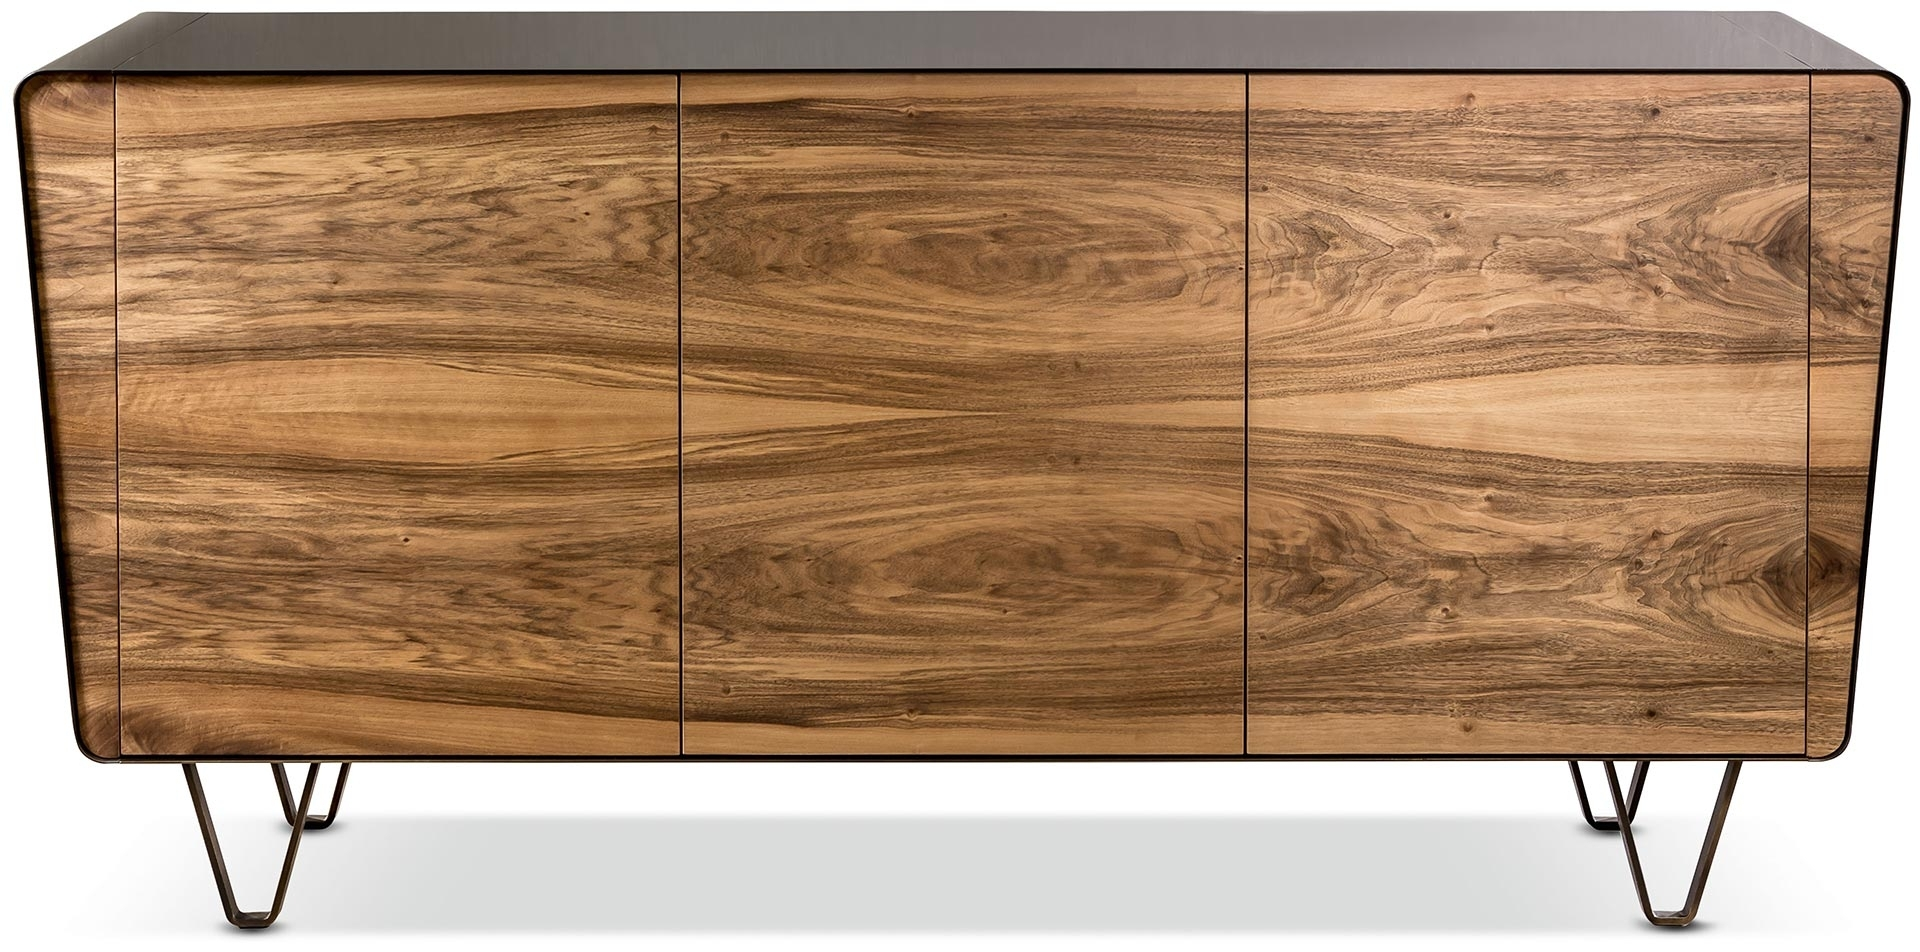 Inspiration about Icaro Sideboard – Cantori With Regard To Current Vintage Finish 4 Door Sideboards (#20 of 20)